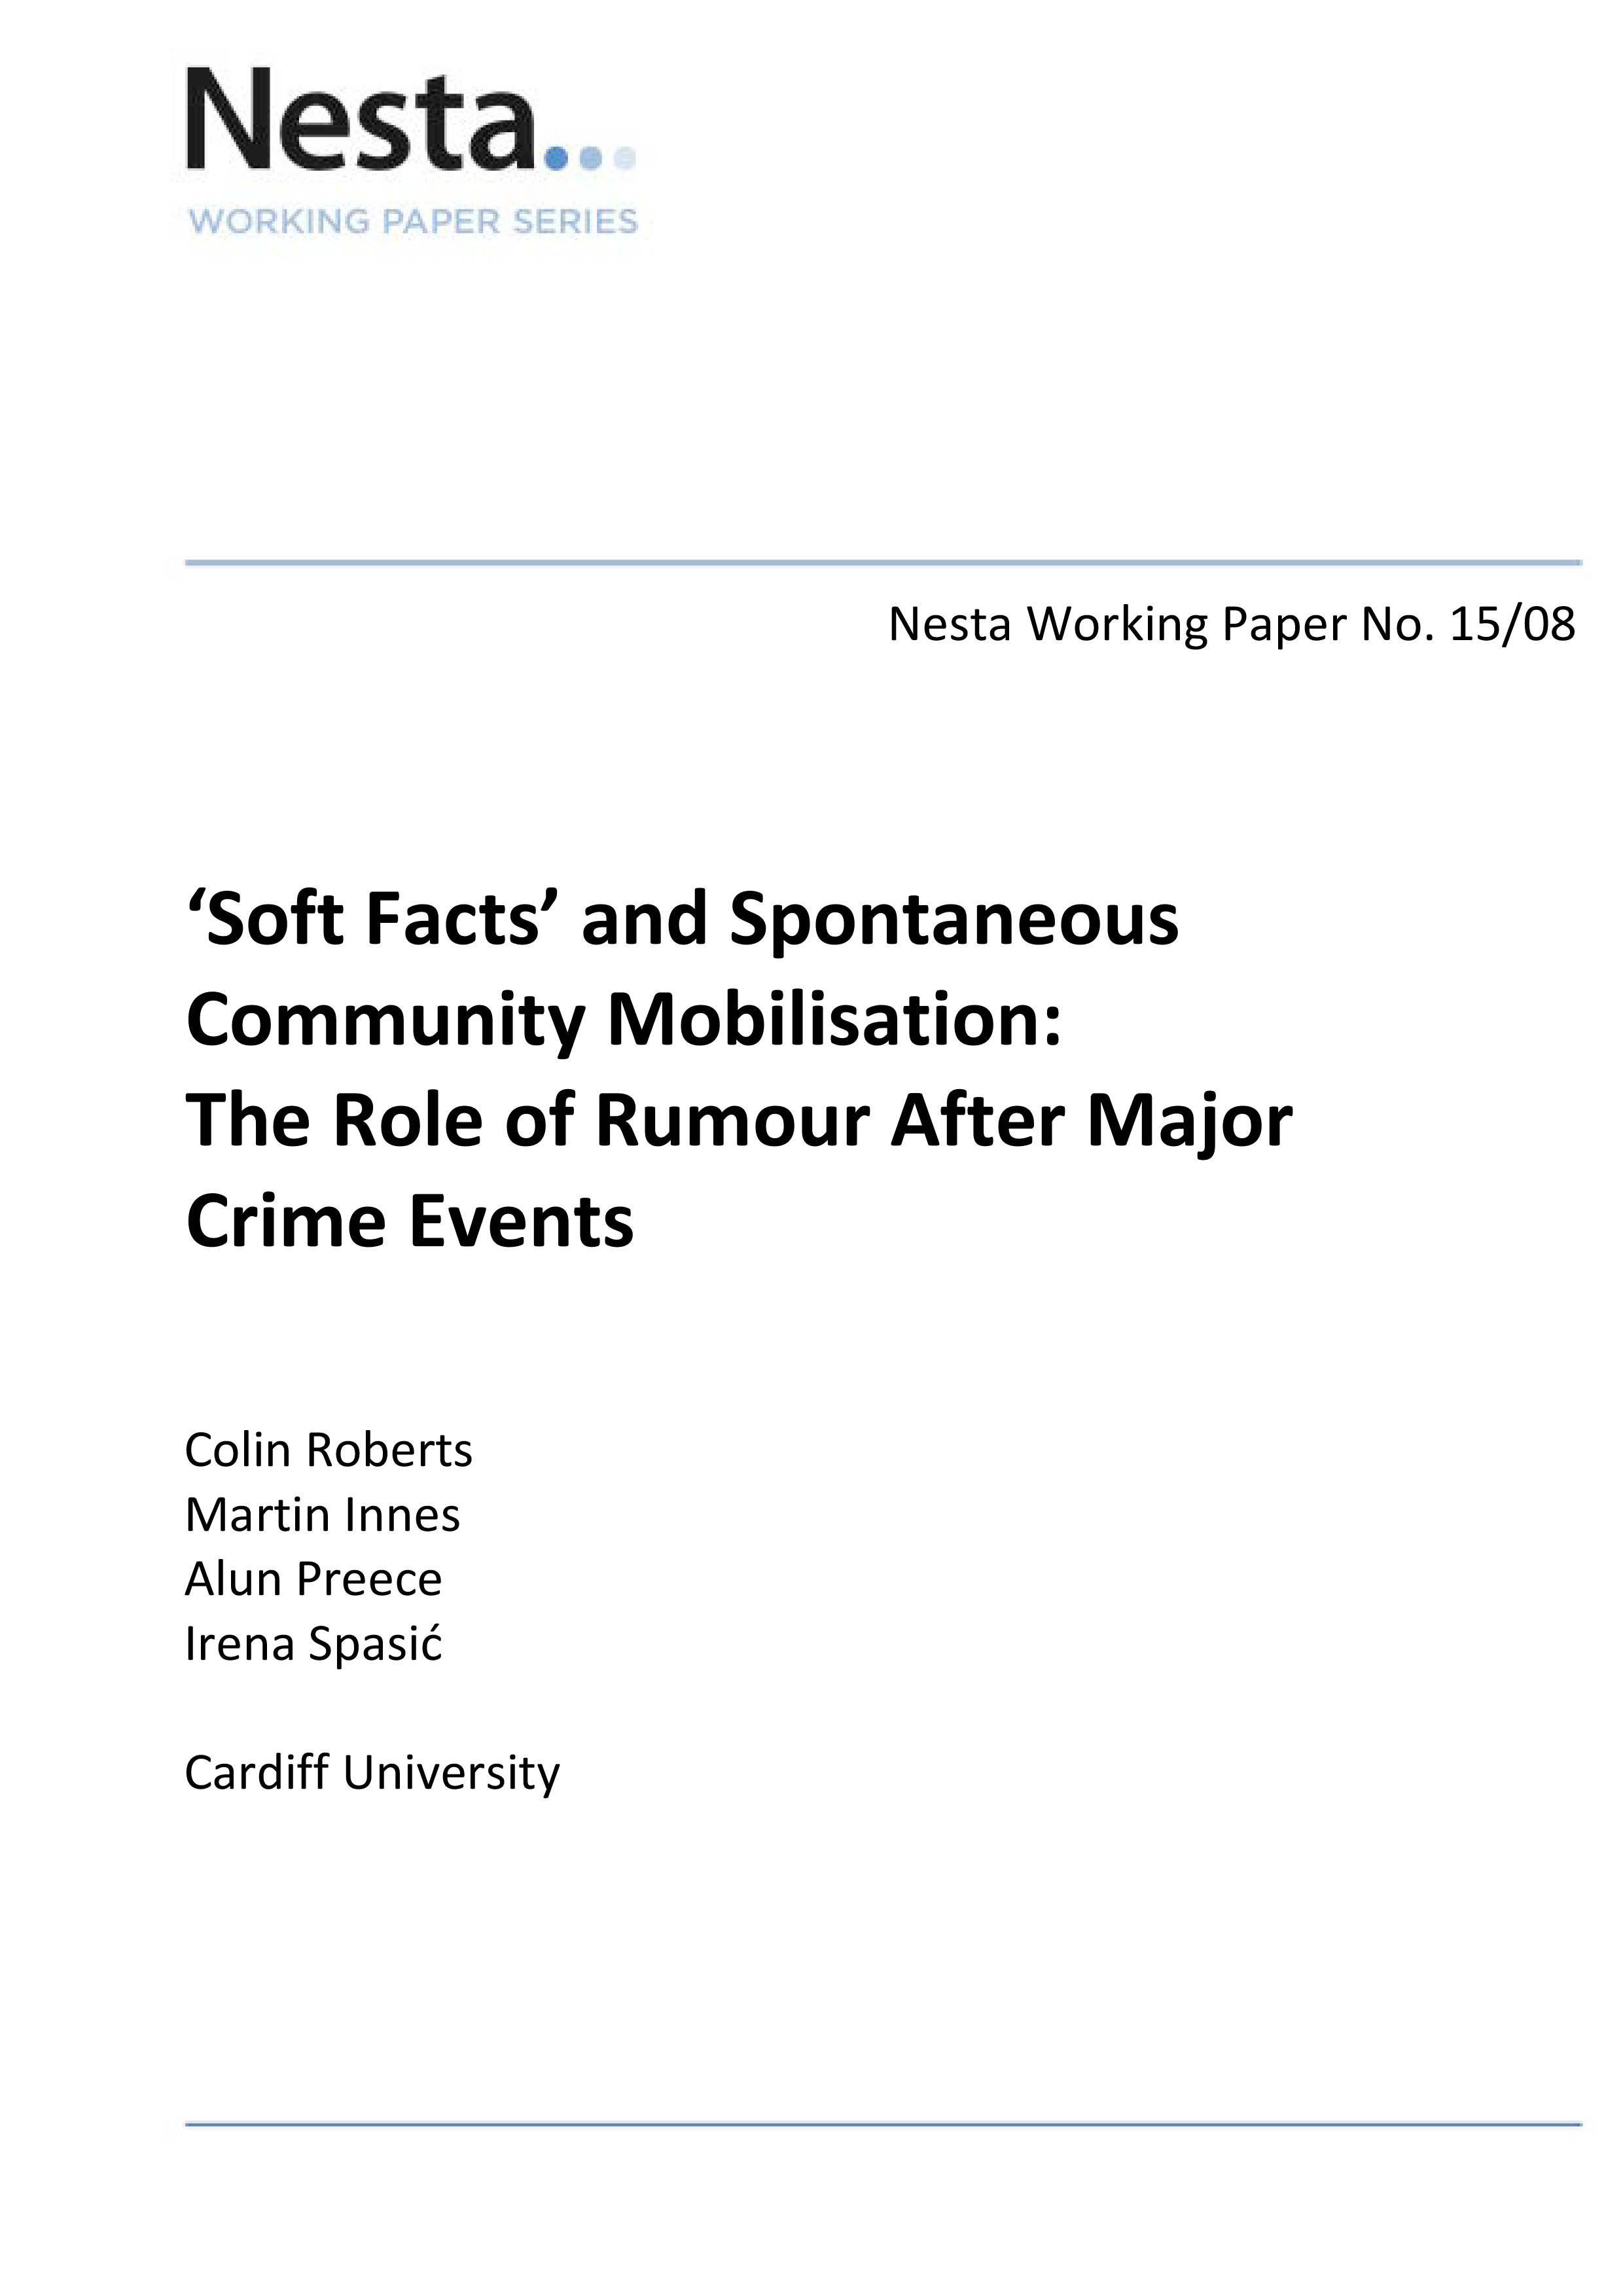 'Soft Facts' and Community Mobilisation: The Role of Rumour After Major Crime Events